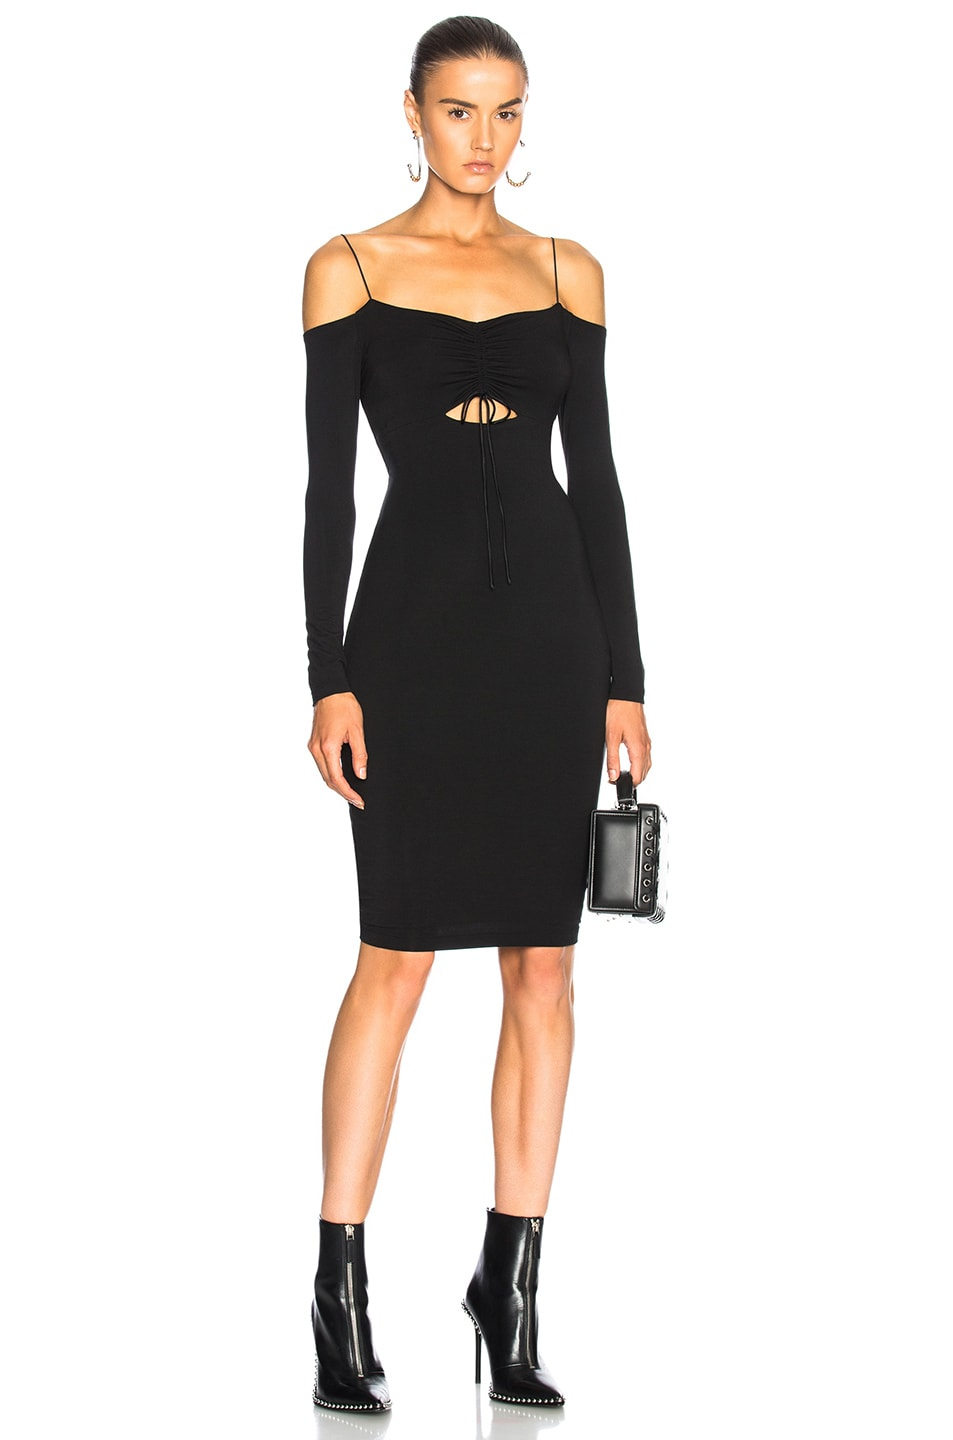 3c6f87d5f4 Image 1 of T by Alexander Wang Cut Out Mini Dress in Black